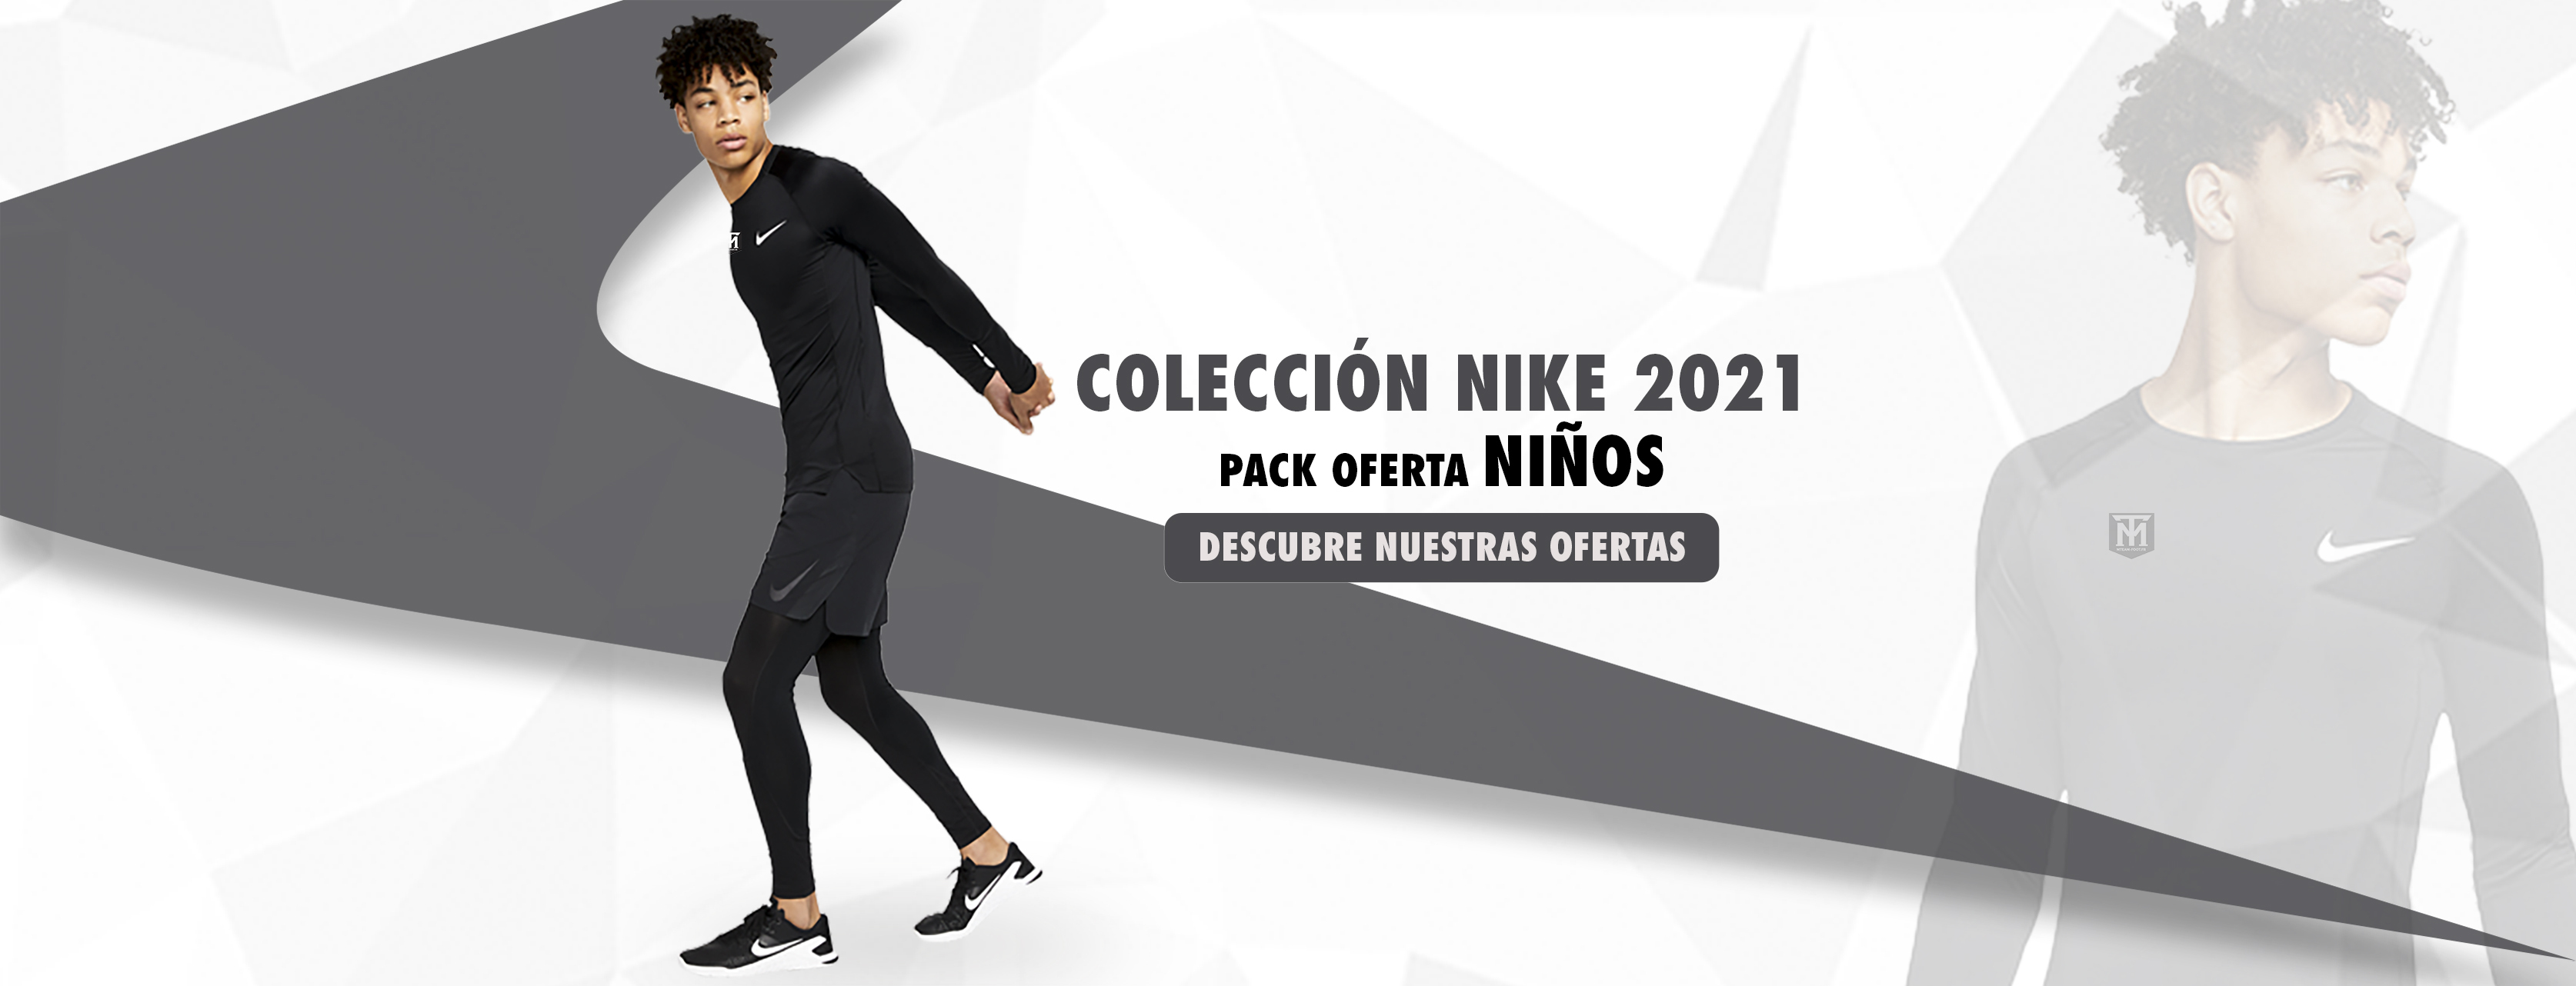 Collection Nike